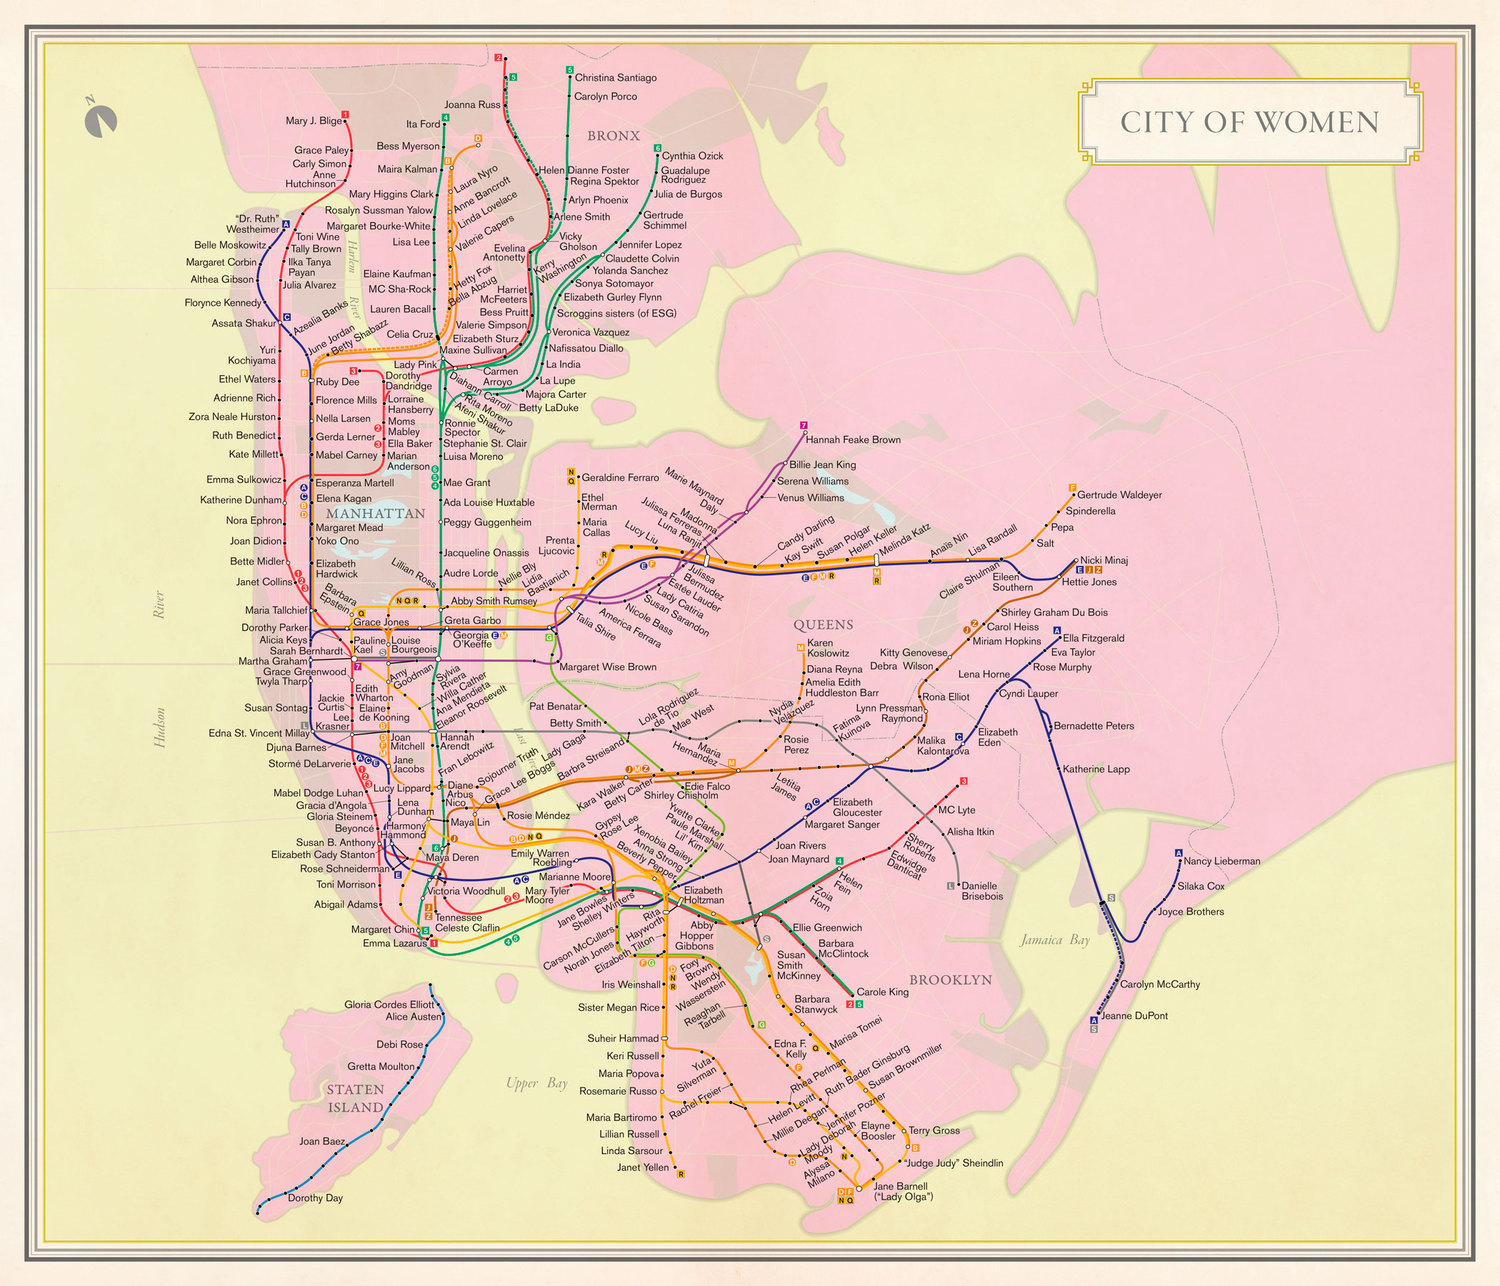 What if the New York City subway map paid homage to some of the city's great women?